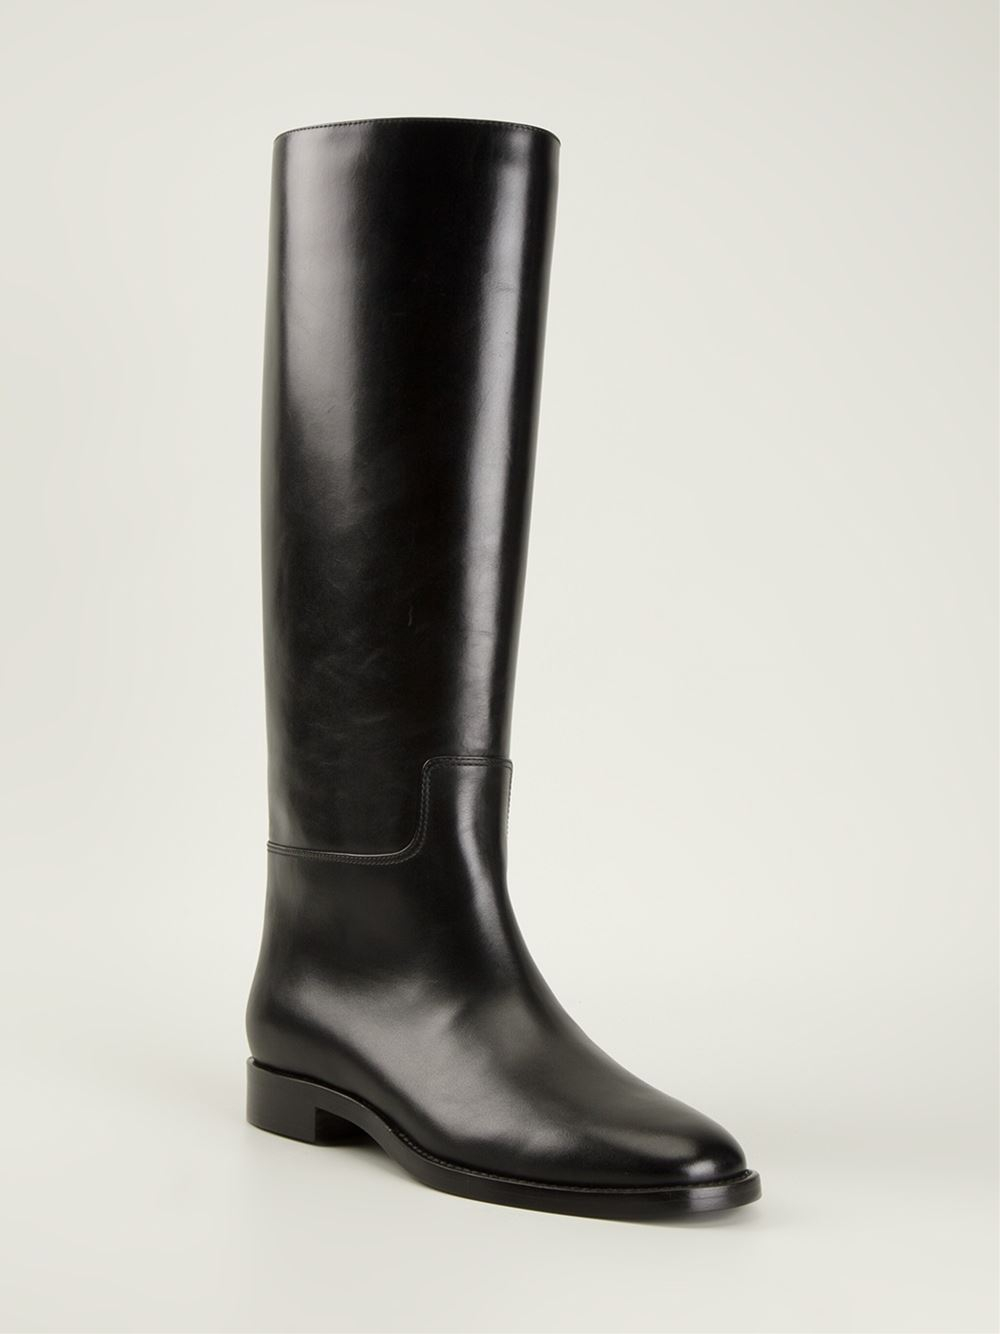 Tom ford Riding Boots in Black | Lyst